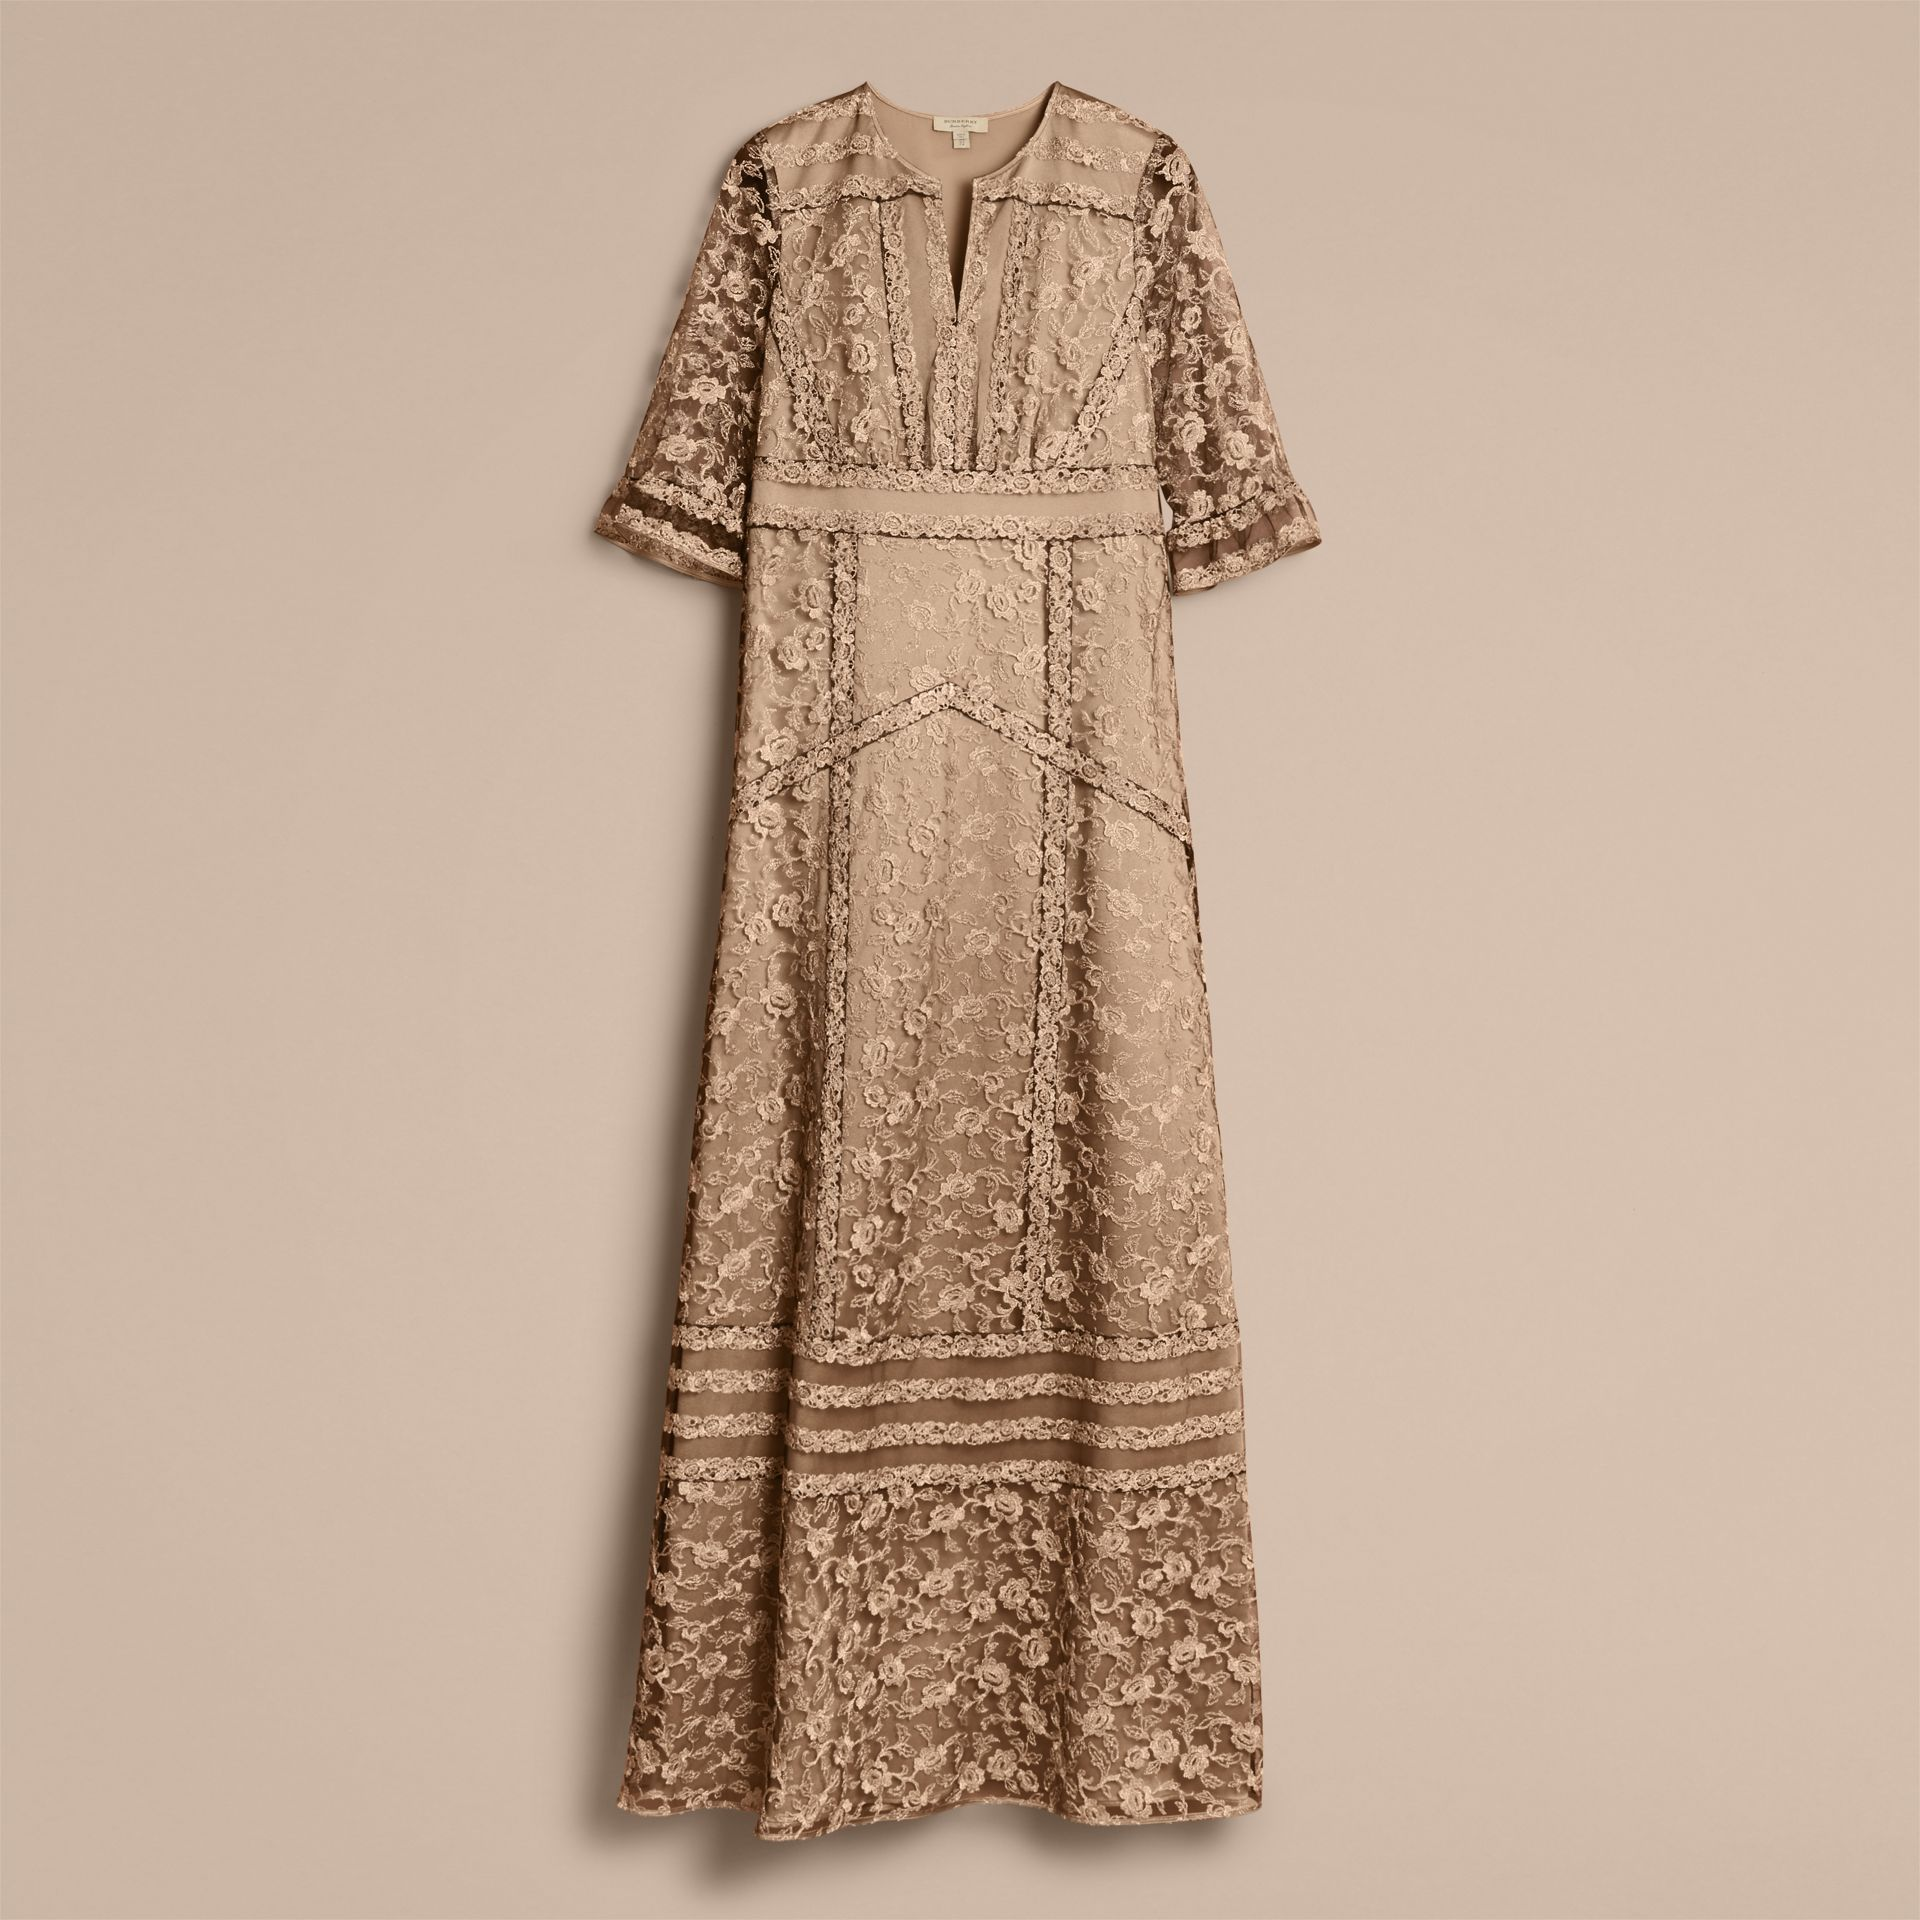 Floral Lace Tulle Dress in Gold - Women | Burberry - gallery image 4